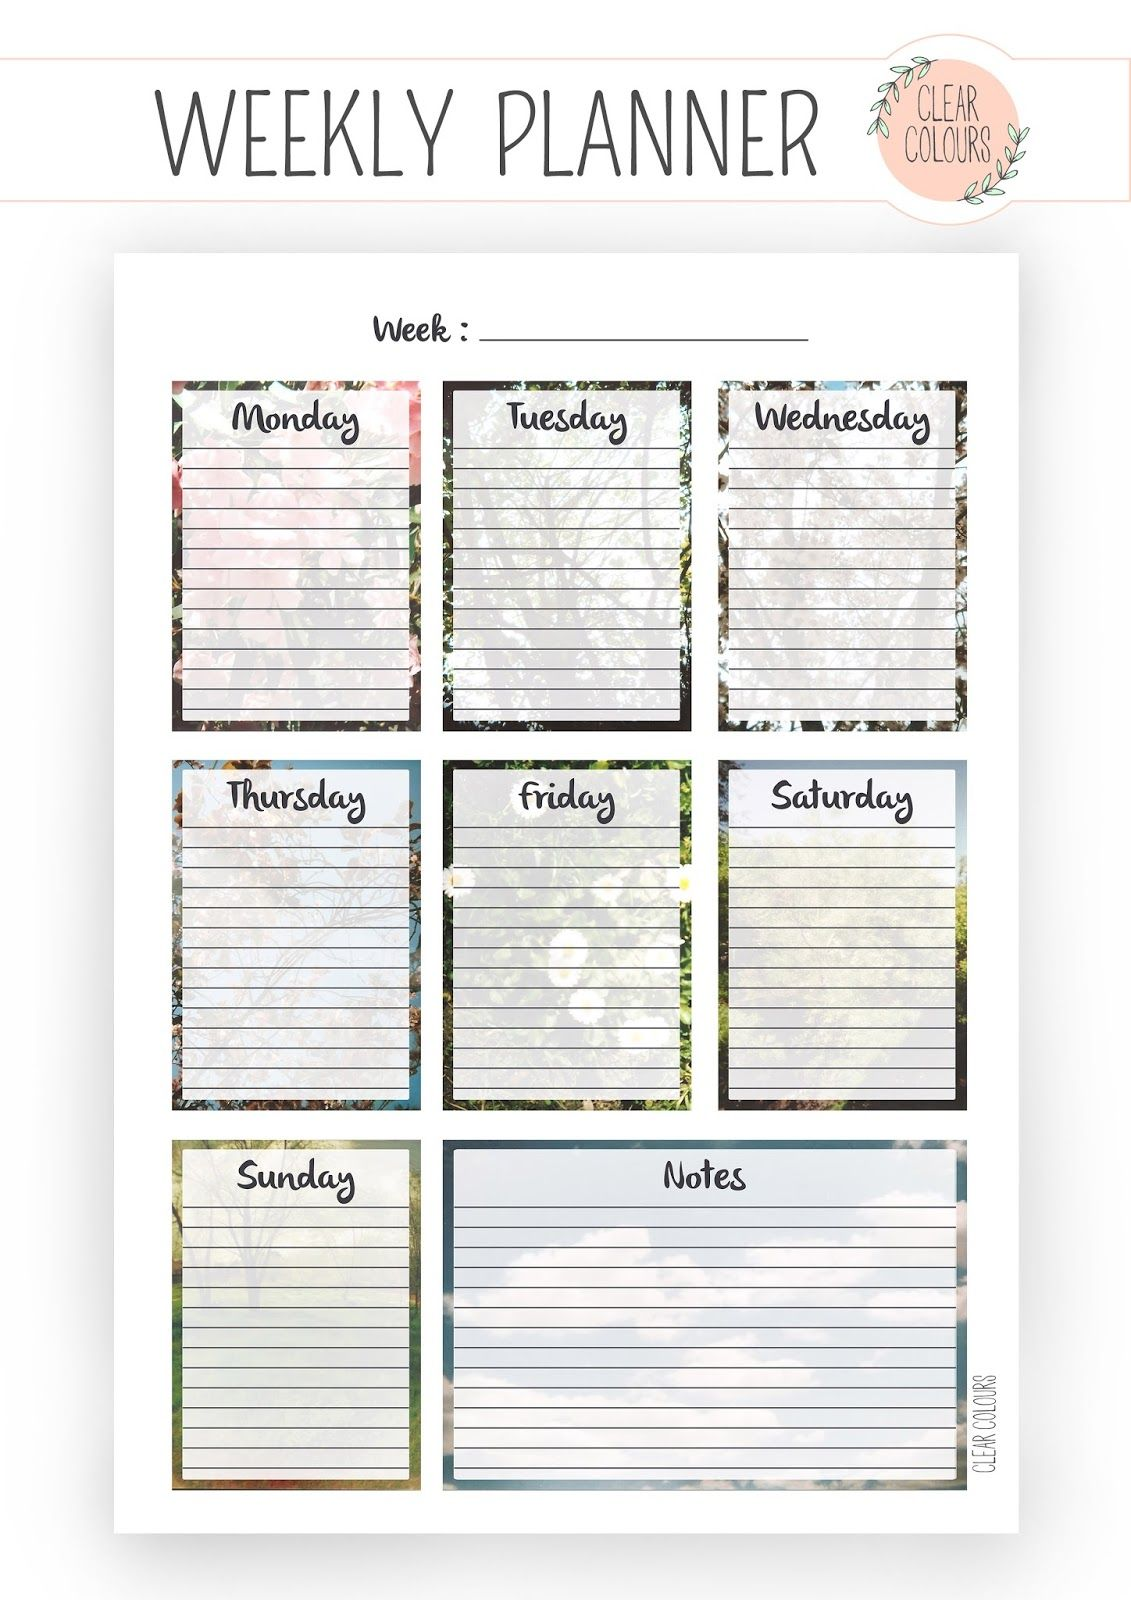 clear colours: Weekly Planner/ Planificador semanal